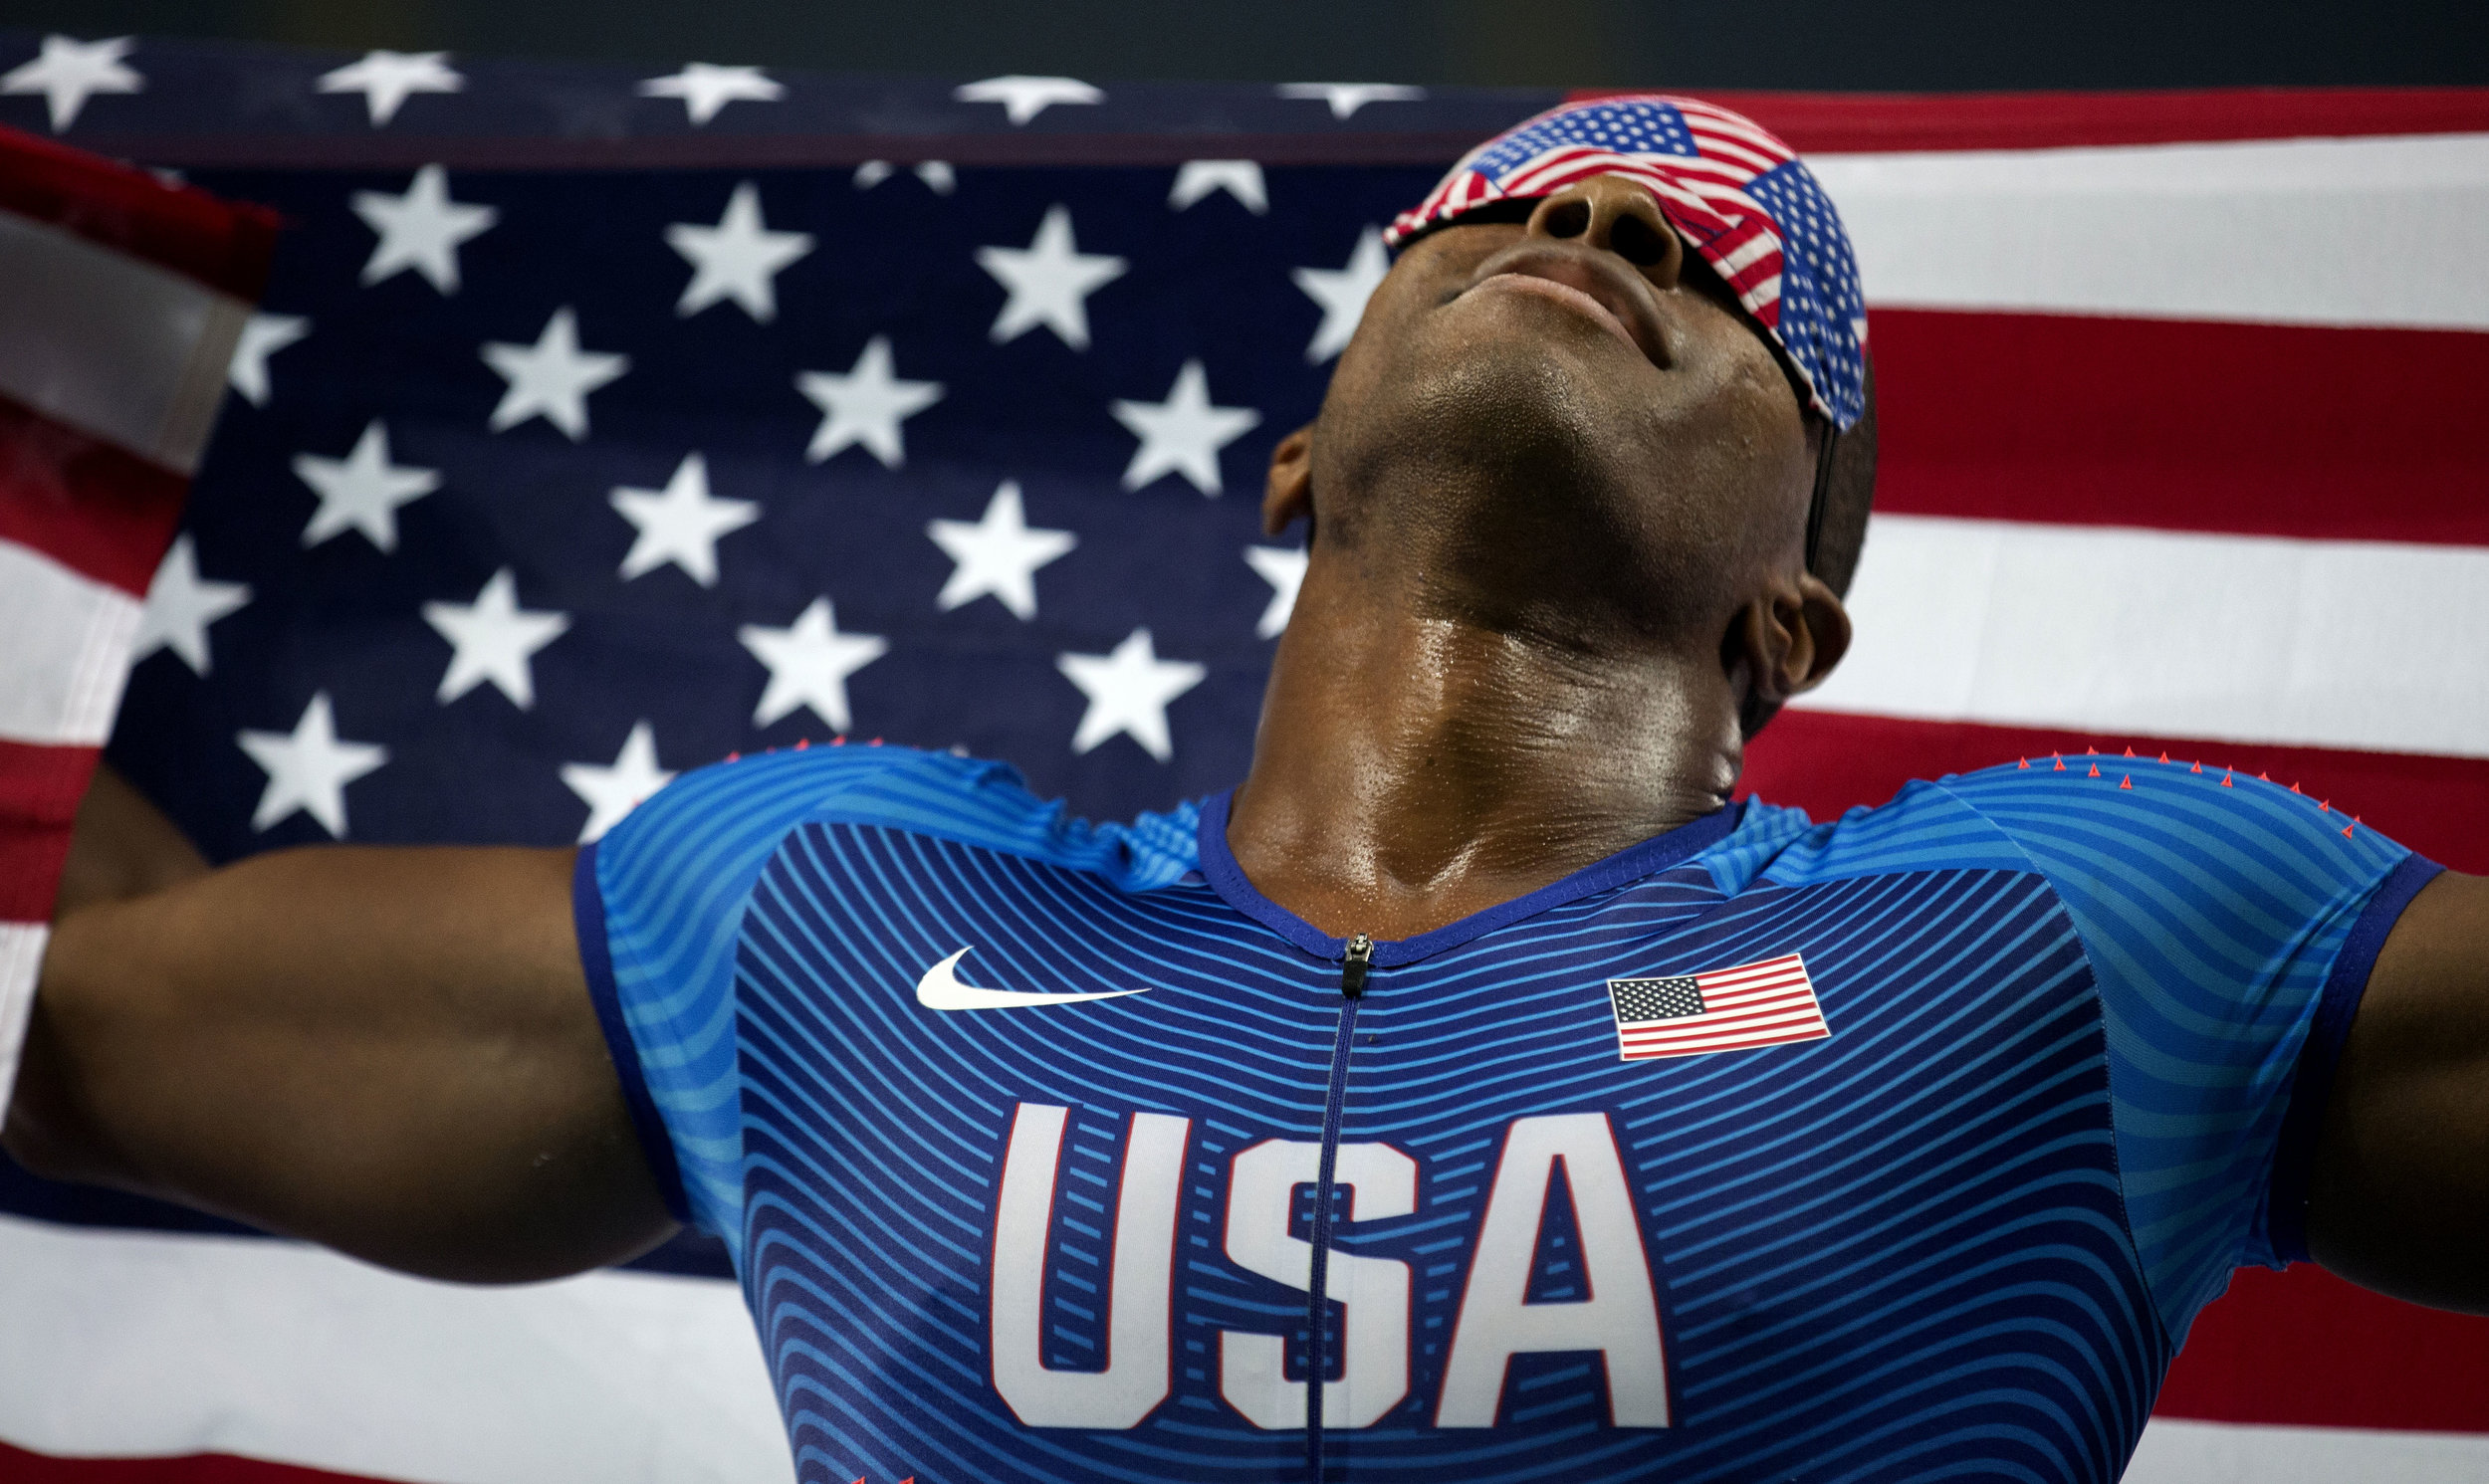 David Brown holds an American flag aloft as he and his sighted guide, Jerome Avery, celebrate Brown's Paralymic record time of 10.99 seconds in the 100 meter dash at the 2016 Paralympic Games at Olympic Stadium in Rio de Janeiro, on Sunday, Sept. 11, 2016.